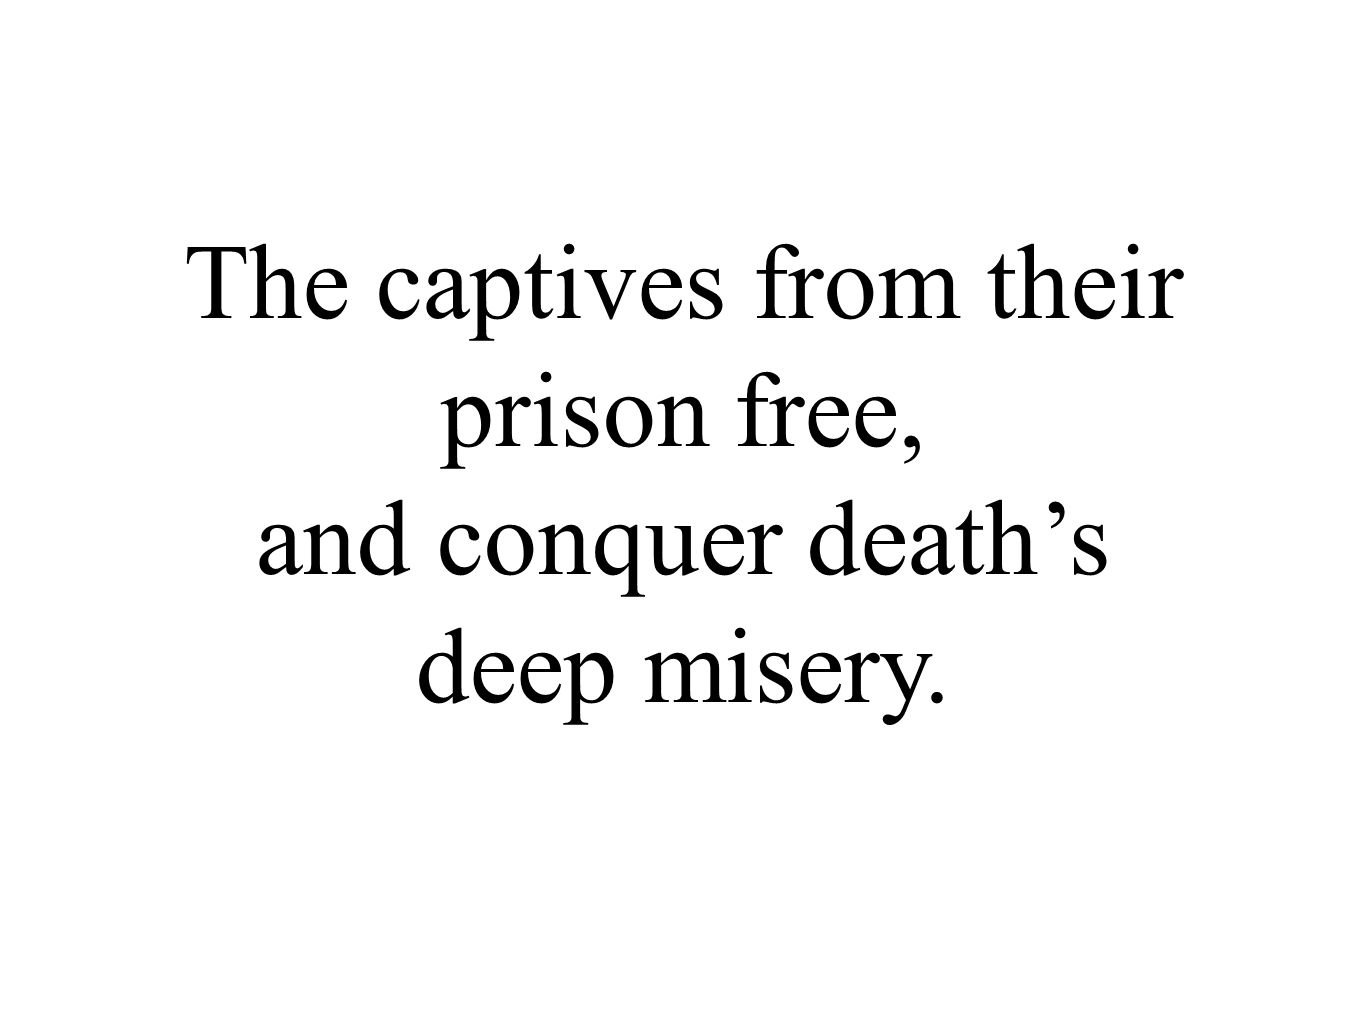 The captives from their prison free, and conquer death's deep misery.